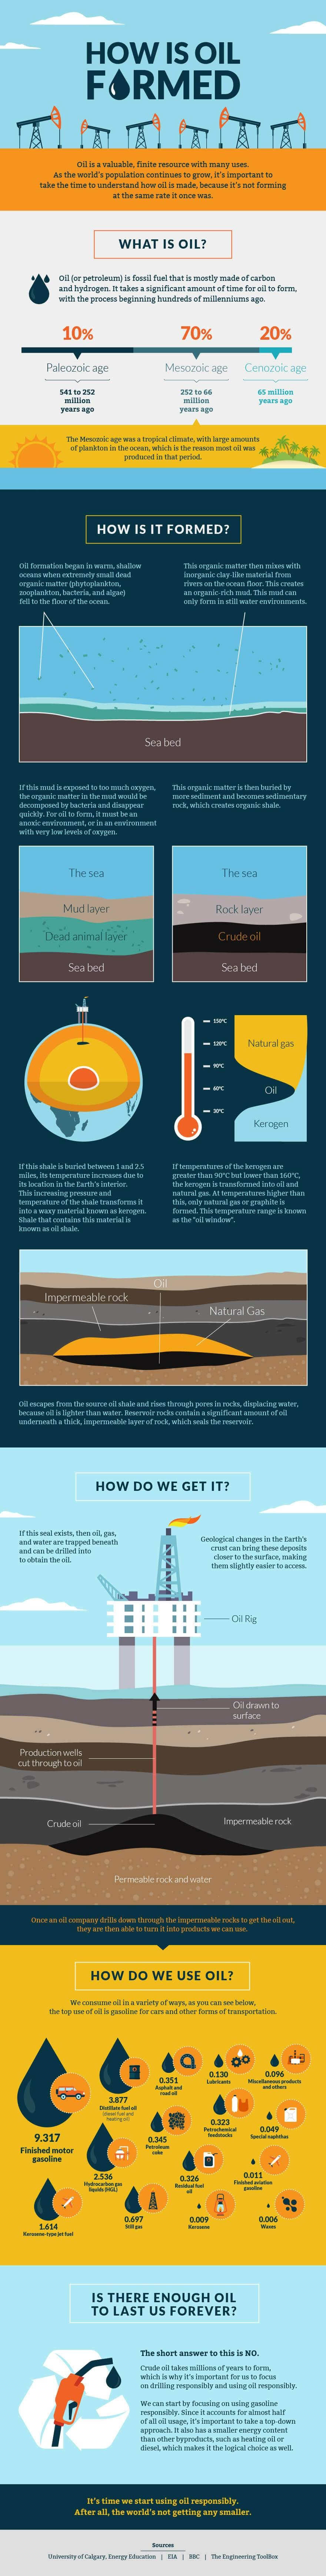 The Story of Oil and Why We Have to Use It Responsibly - Infographic